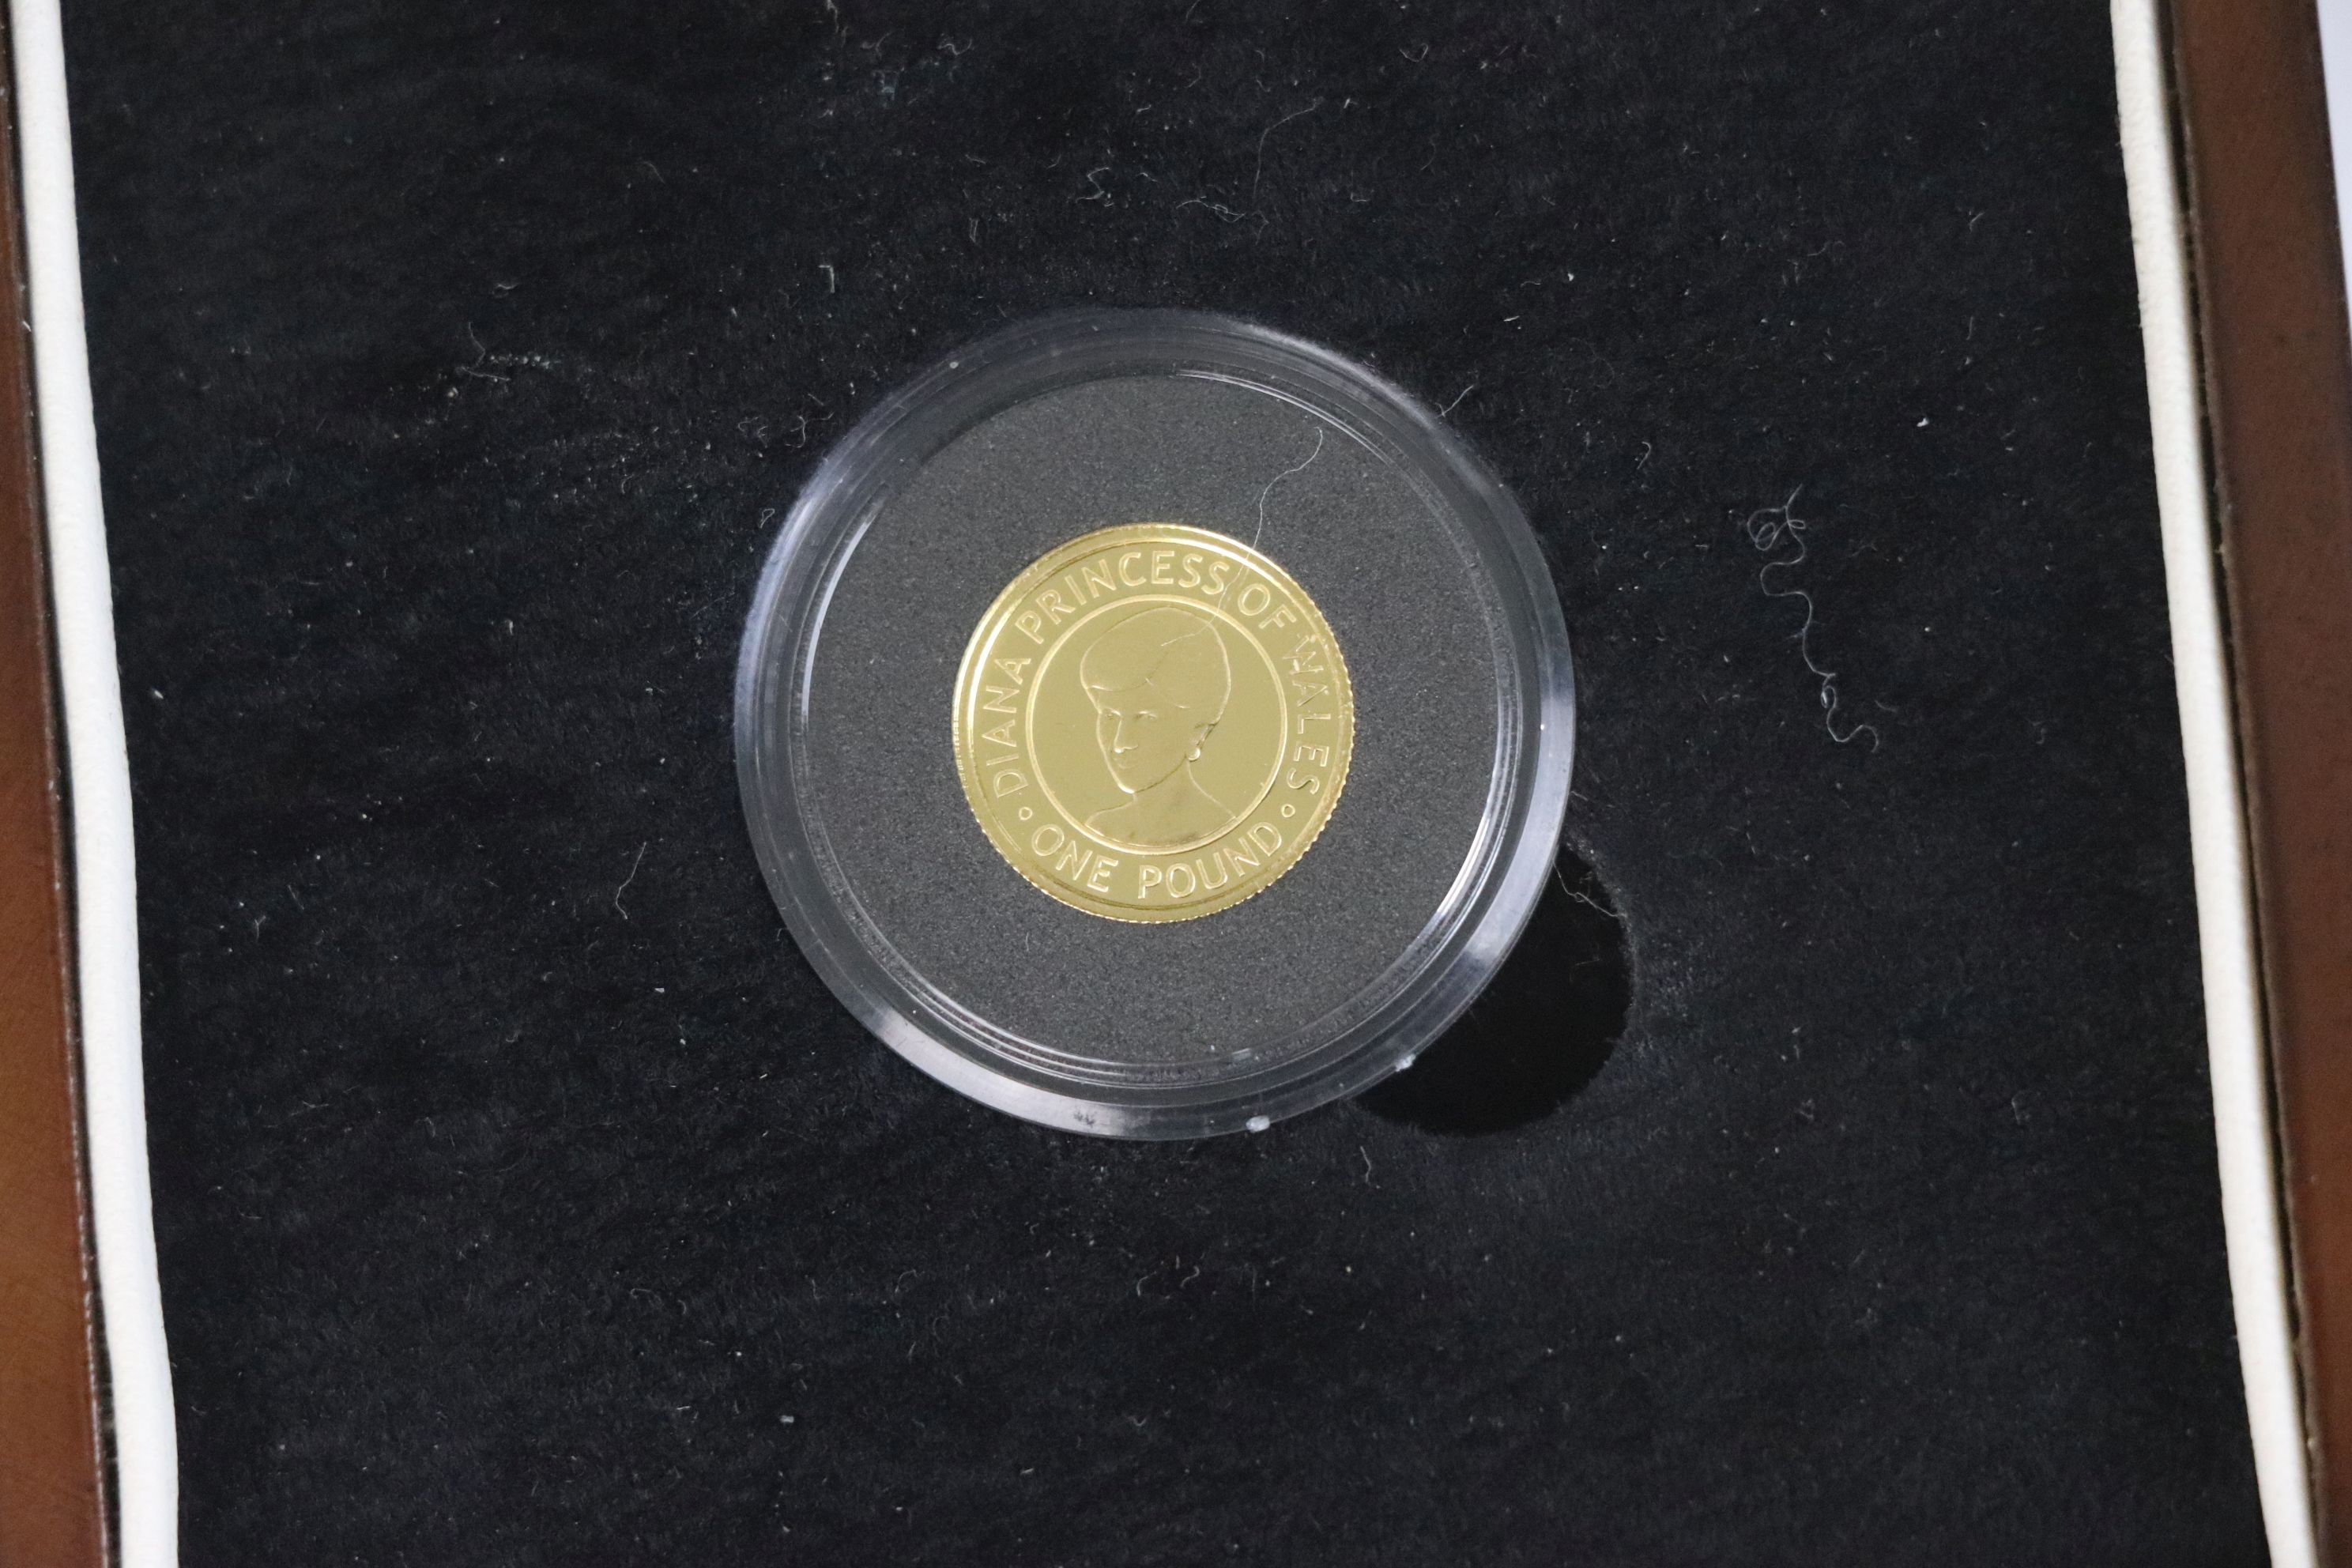 A Queen Elizabeth II Bailiwick of Jersey Diana Princess of Wales Commemorative £1 gold coin dated - Image 3 of 4